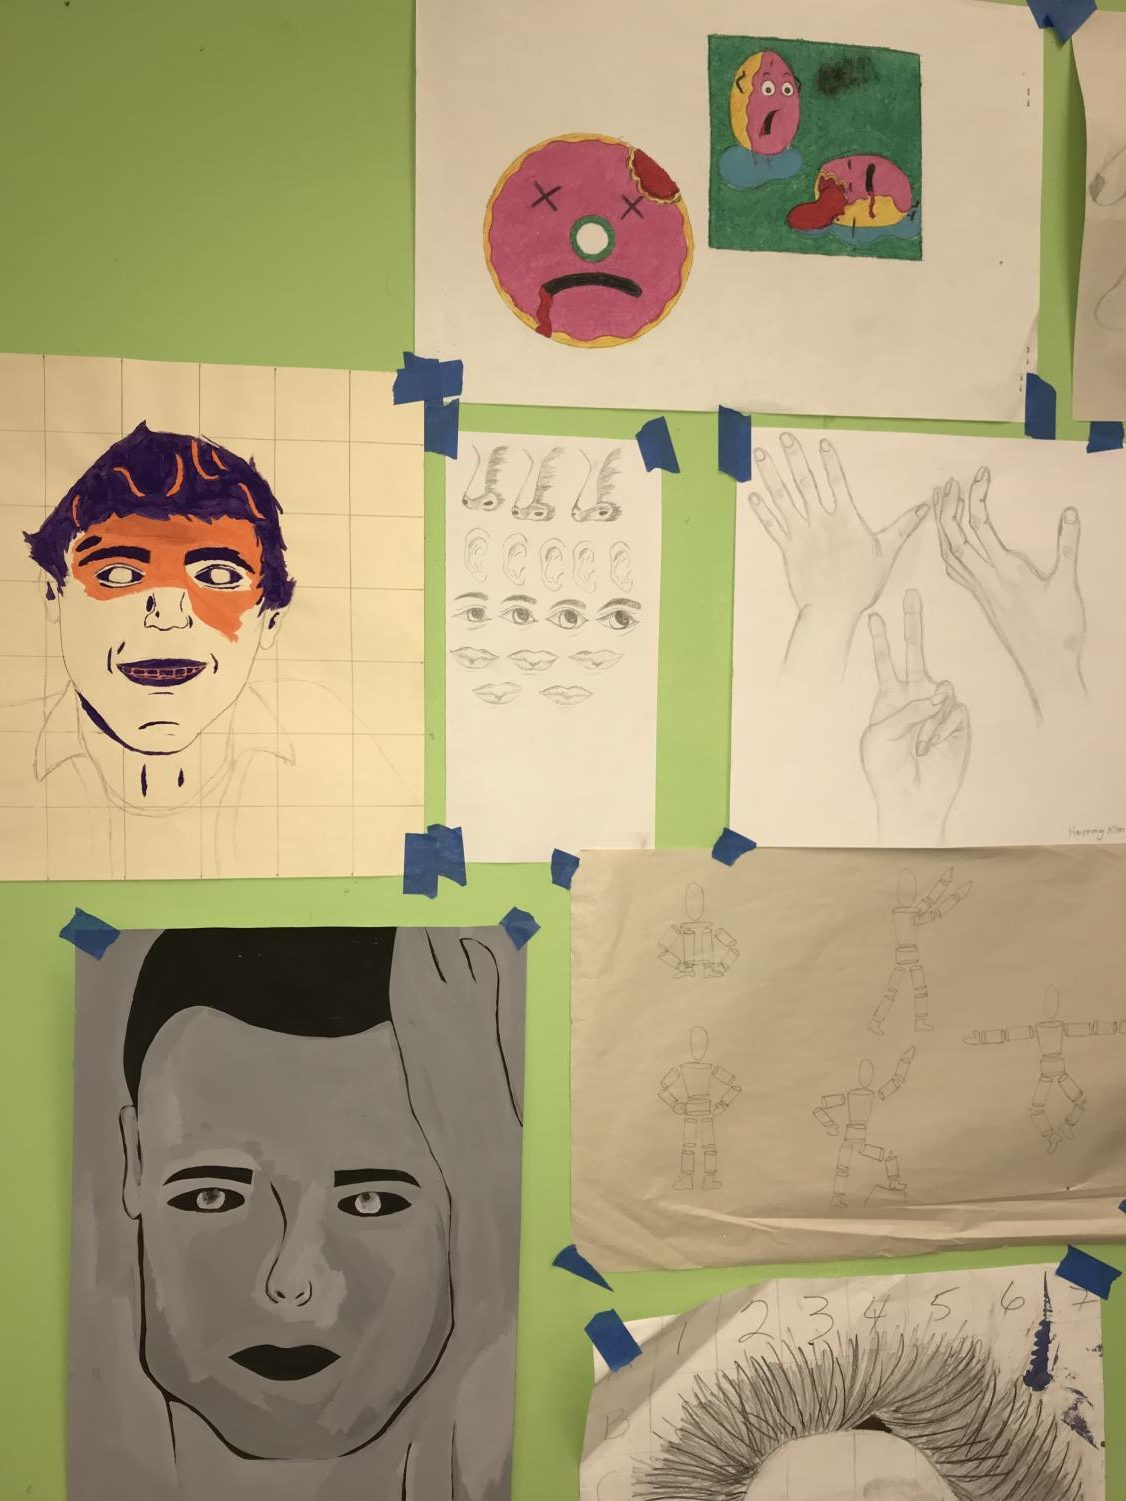 Self+portraits+and+other+diverse+designs+are+scattered+all+over+the+walls+of+Ms.+Shapiro%27s+room.+Not+only+does+the+Sculpture+program+focus+on+creating+three+dimensional+art%2C+students+are+also+encouraged+to+display+their+individuality+through+drawings.+The+principles+of+deign+and+elements+of+art+are+taught+by+Ms.+Shapiro+as+well.+